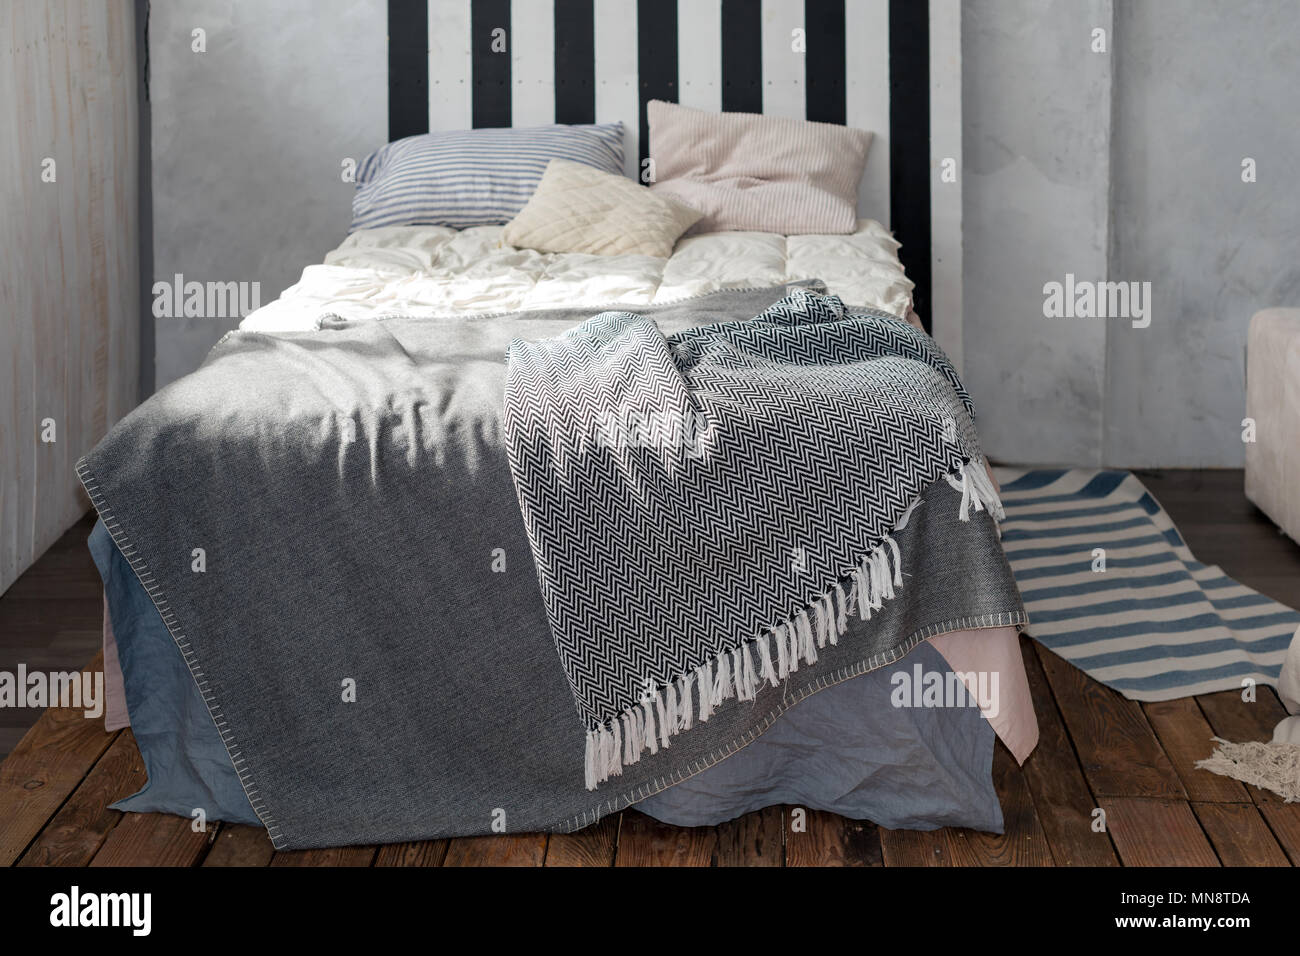 Modern Bedroom With Simple Furniture Gray Bedding And Wooden Headboard Modern Apartment Interior In Loft Design Bed With Pillows Stock Photo Alamy